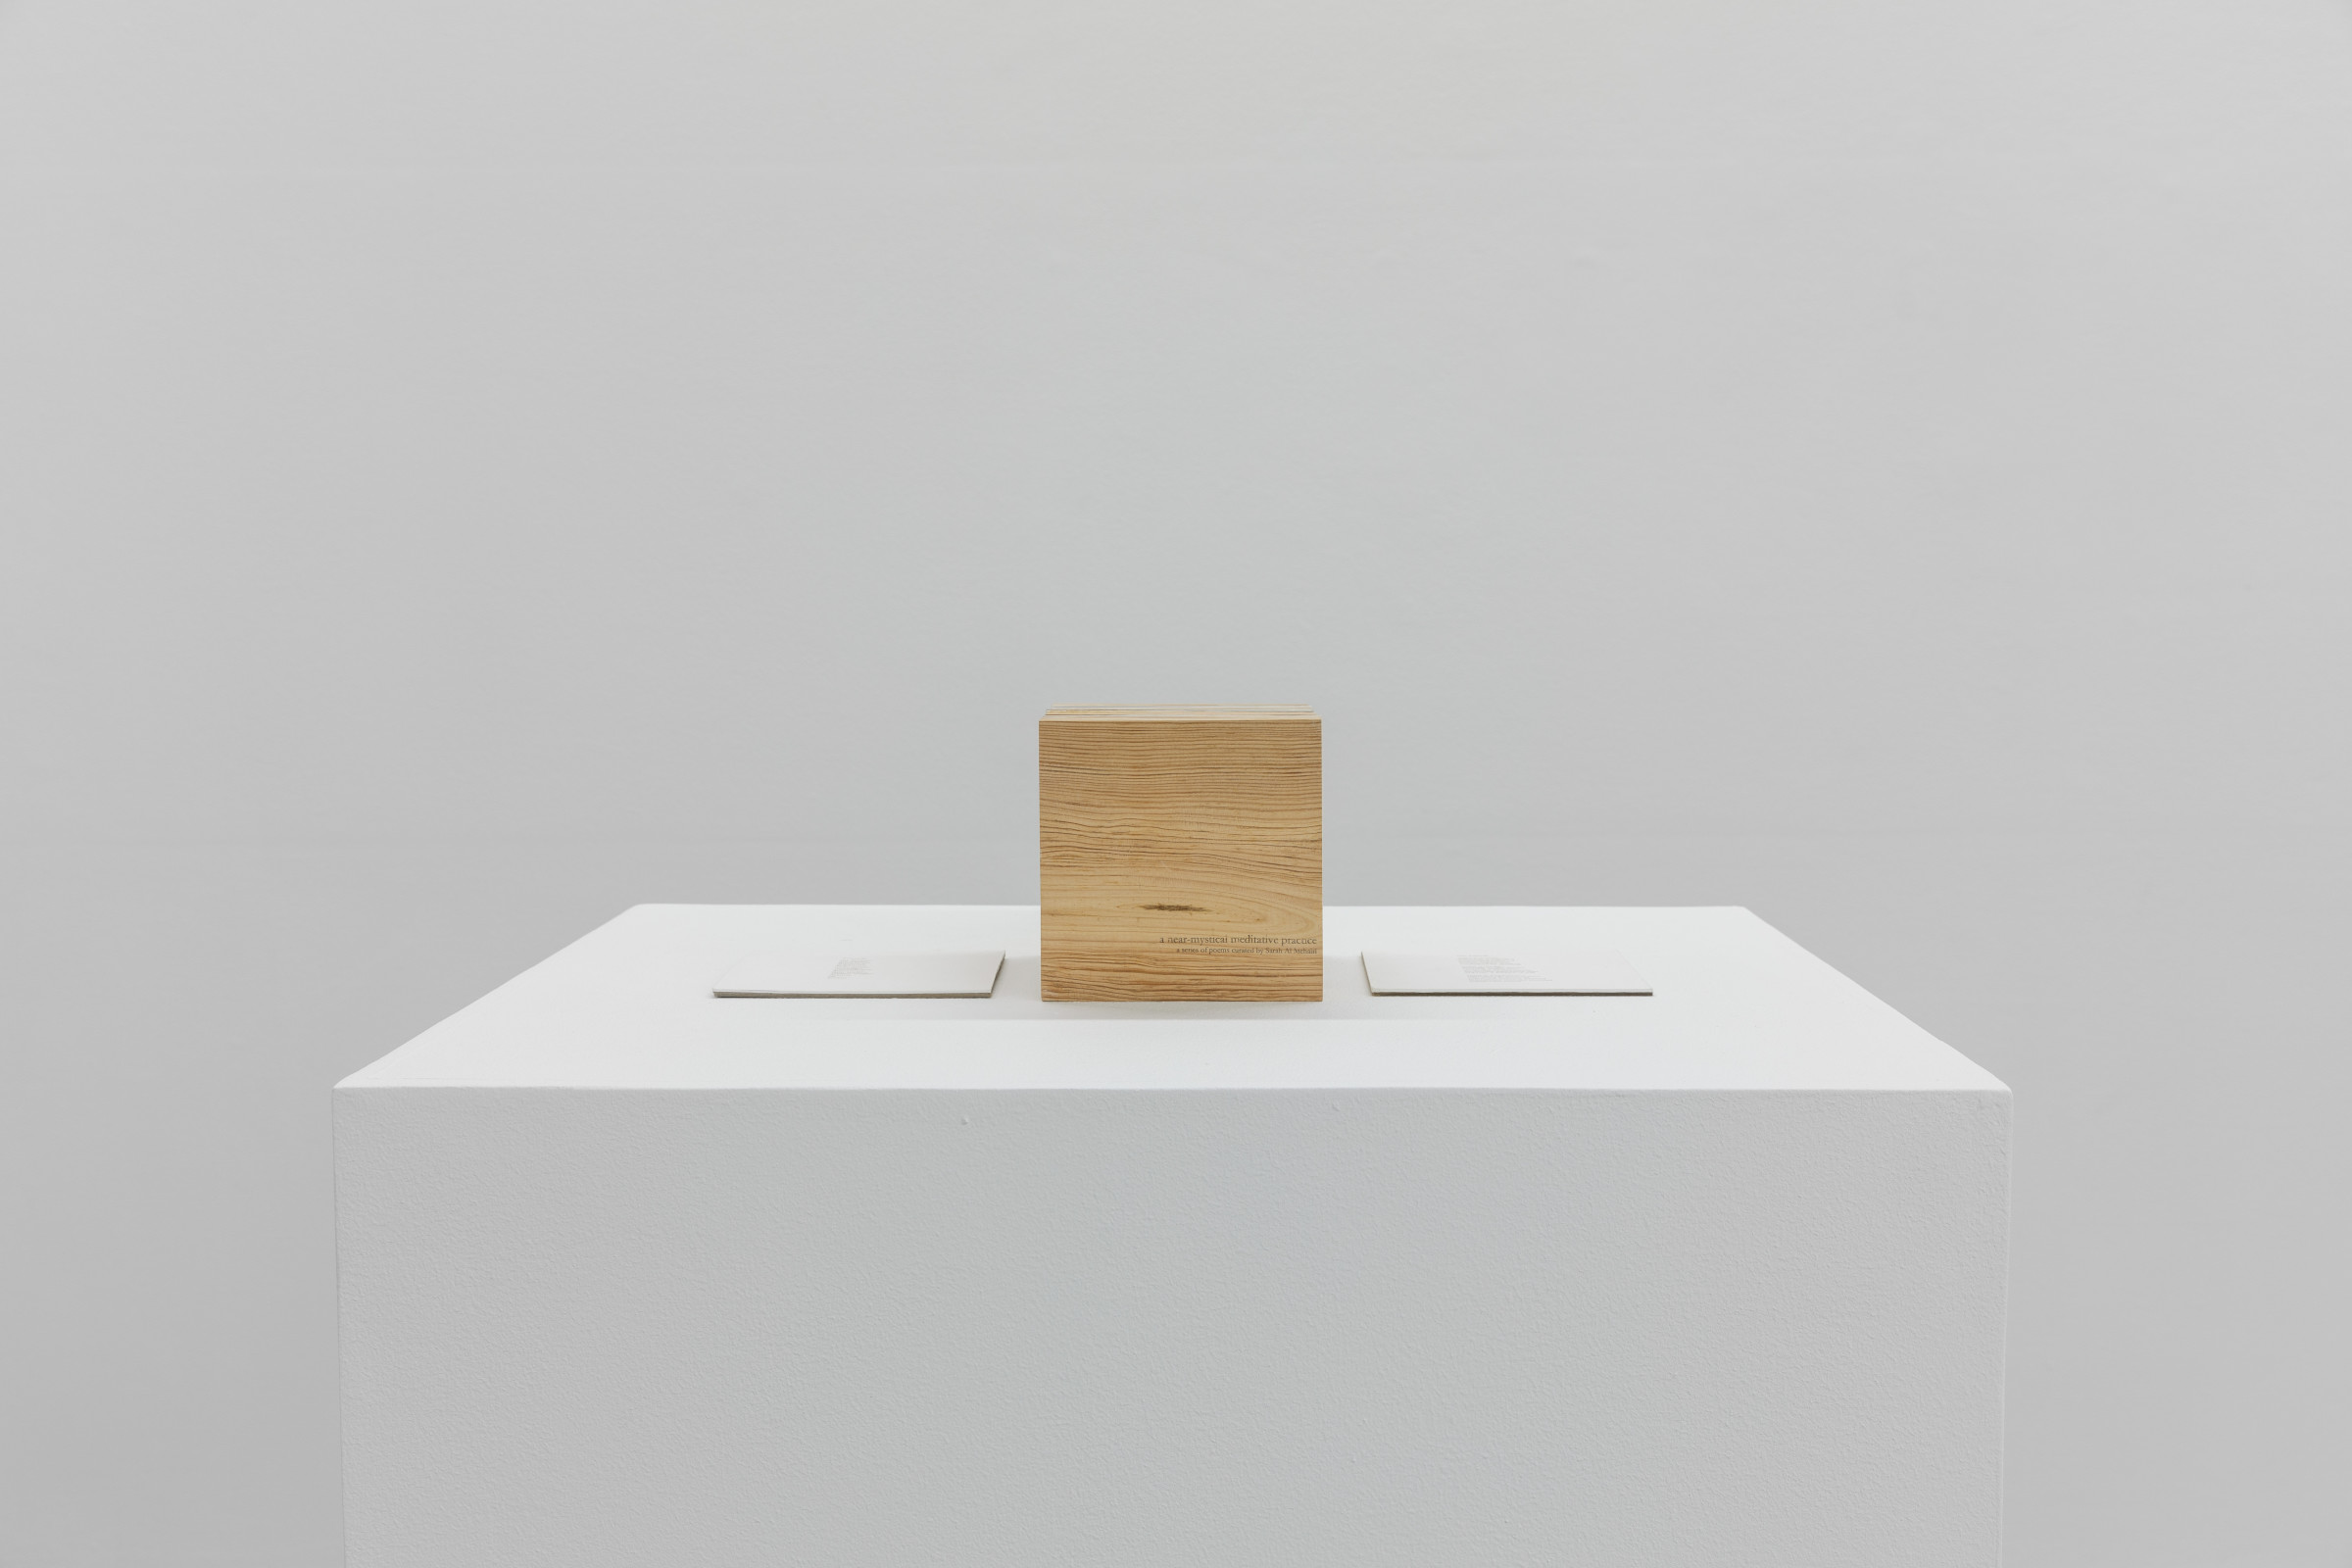 "<span class=""link fancybox-details-link""><a href=""/exhibitions/93/works/artworks2343/"">View Detail Page</a></span><div class=""medium"">Handmade book with language from Agnes Martin </div> <div class=""dimensions"">19.5 x 15 x 15 cm<br /> 7 5/8 x 5 7/8 x 5 7/8 in</div>"